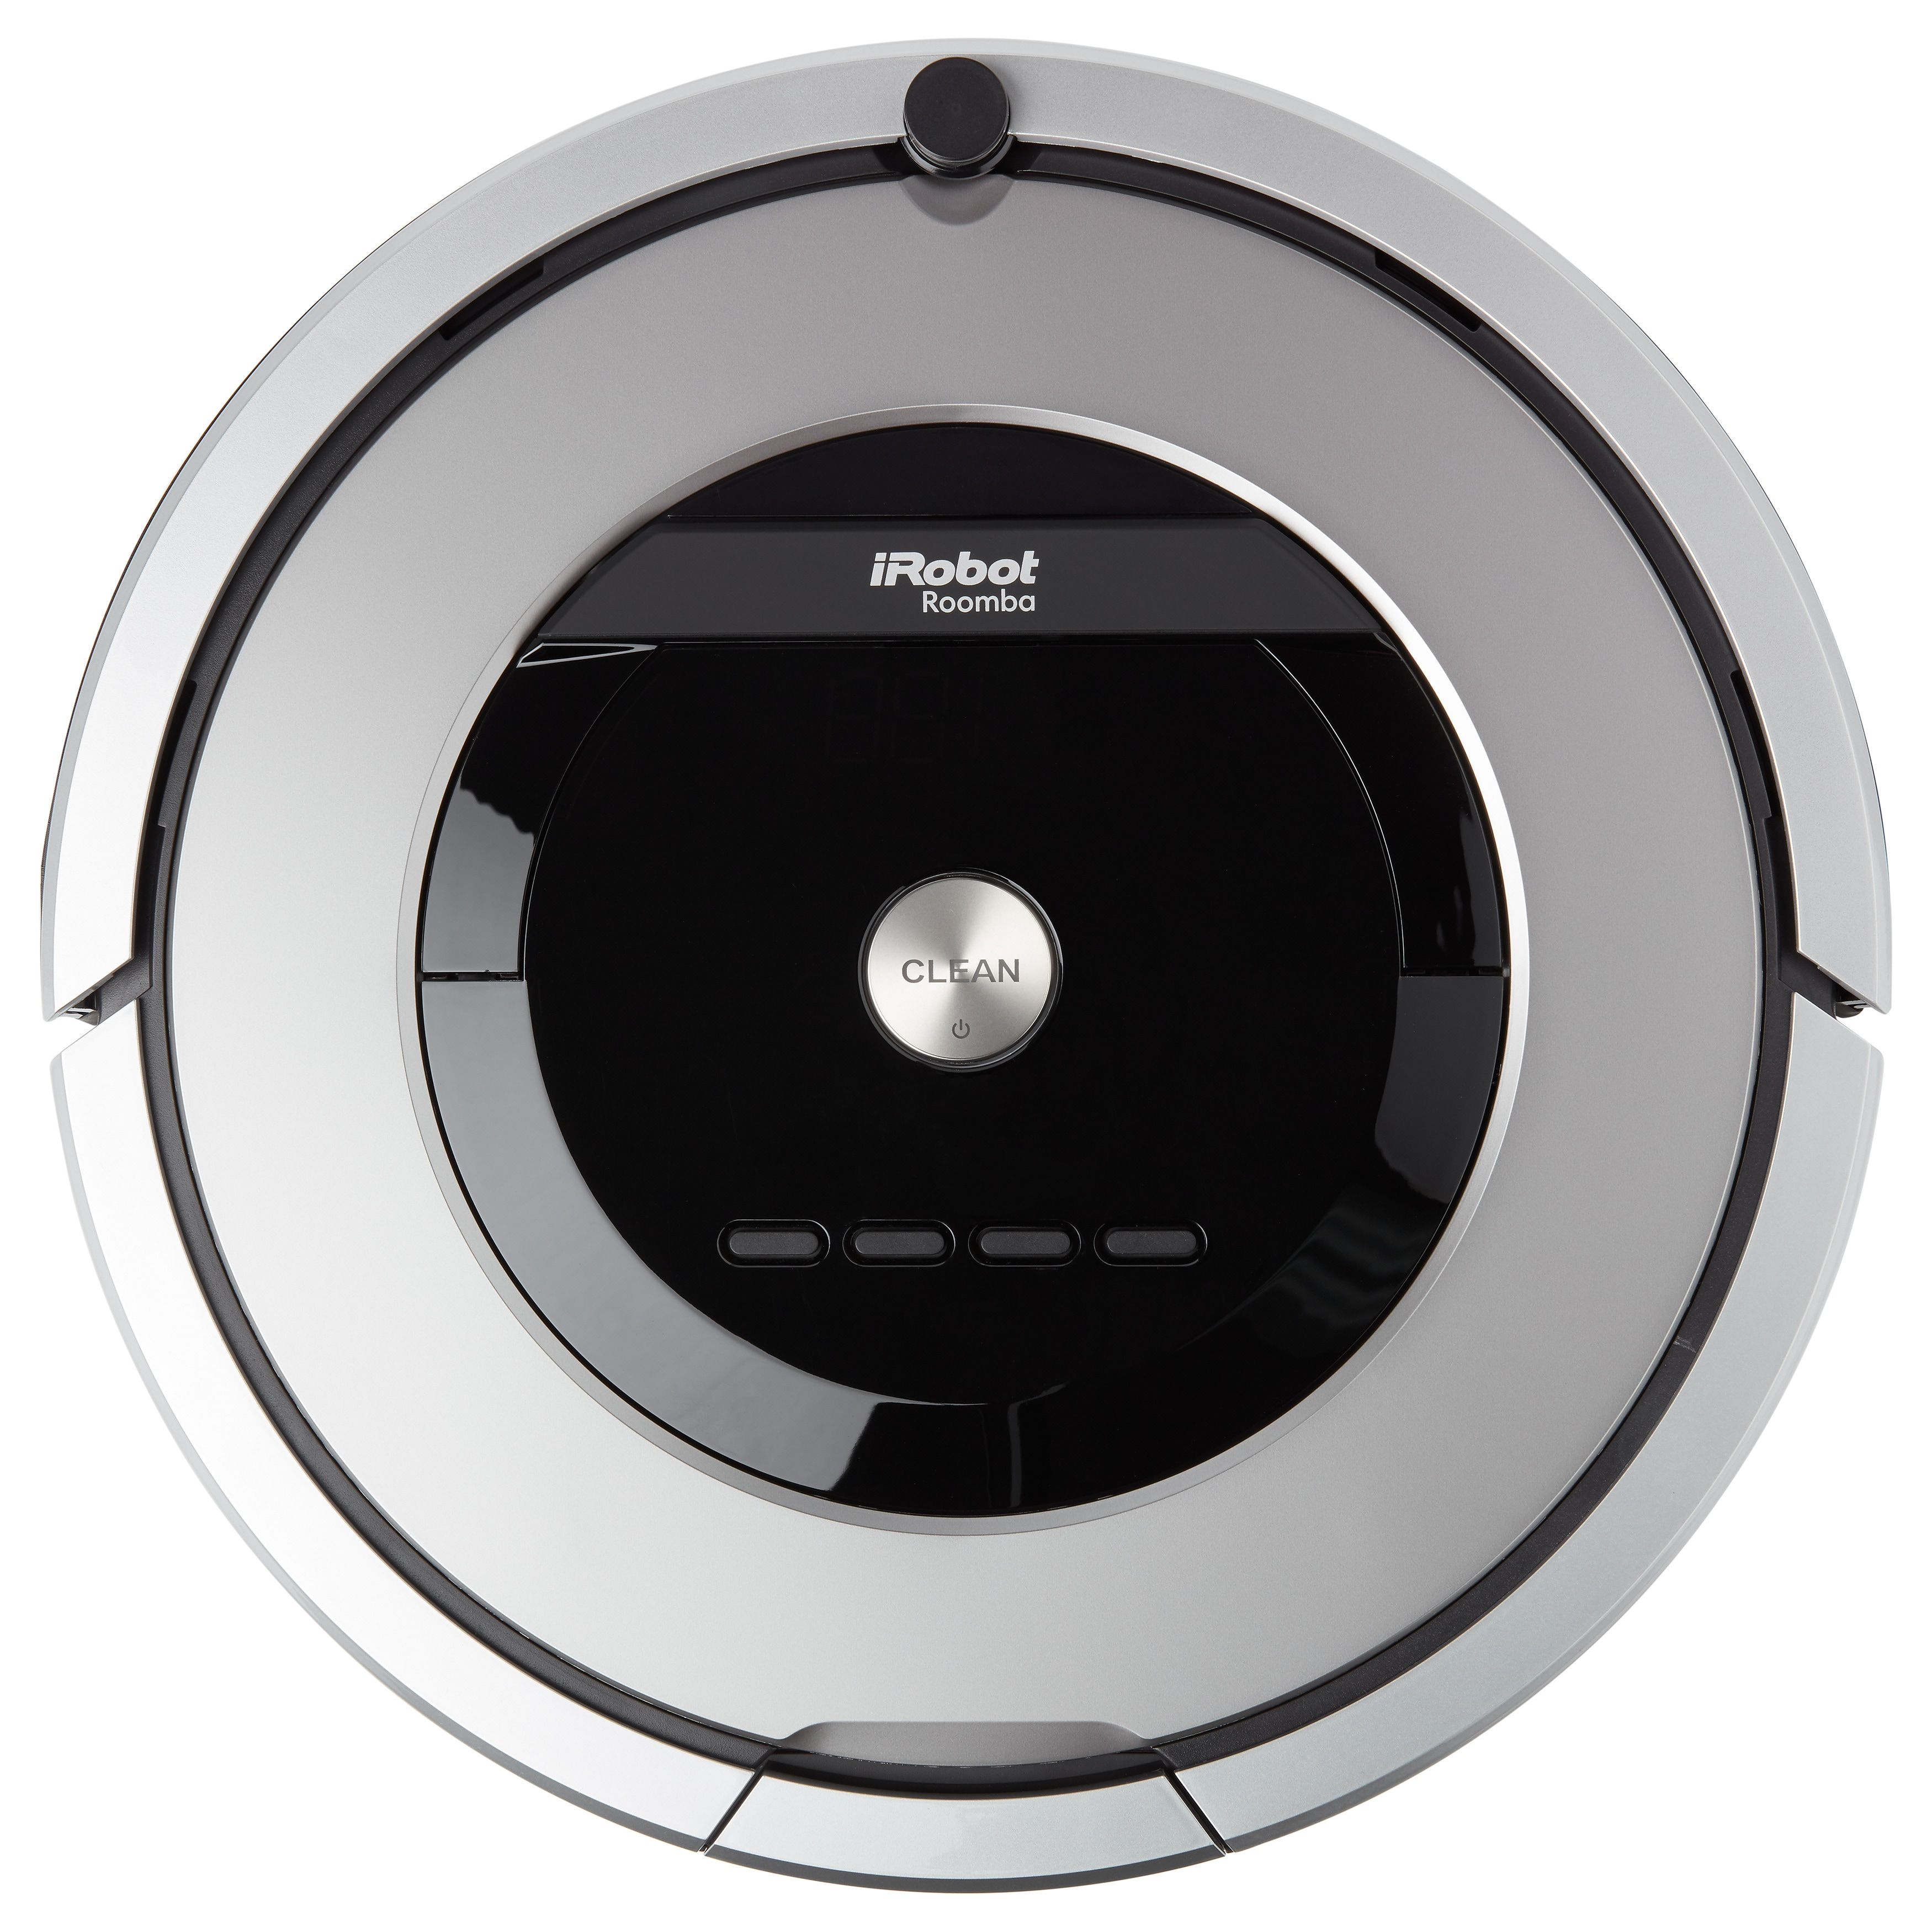 iRobot Roomba 860 Vacuum Cleaning Robot, Silver, Size 14 ...